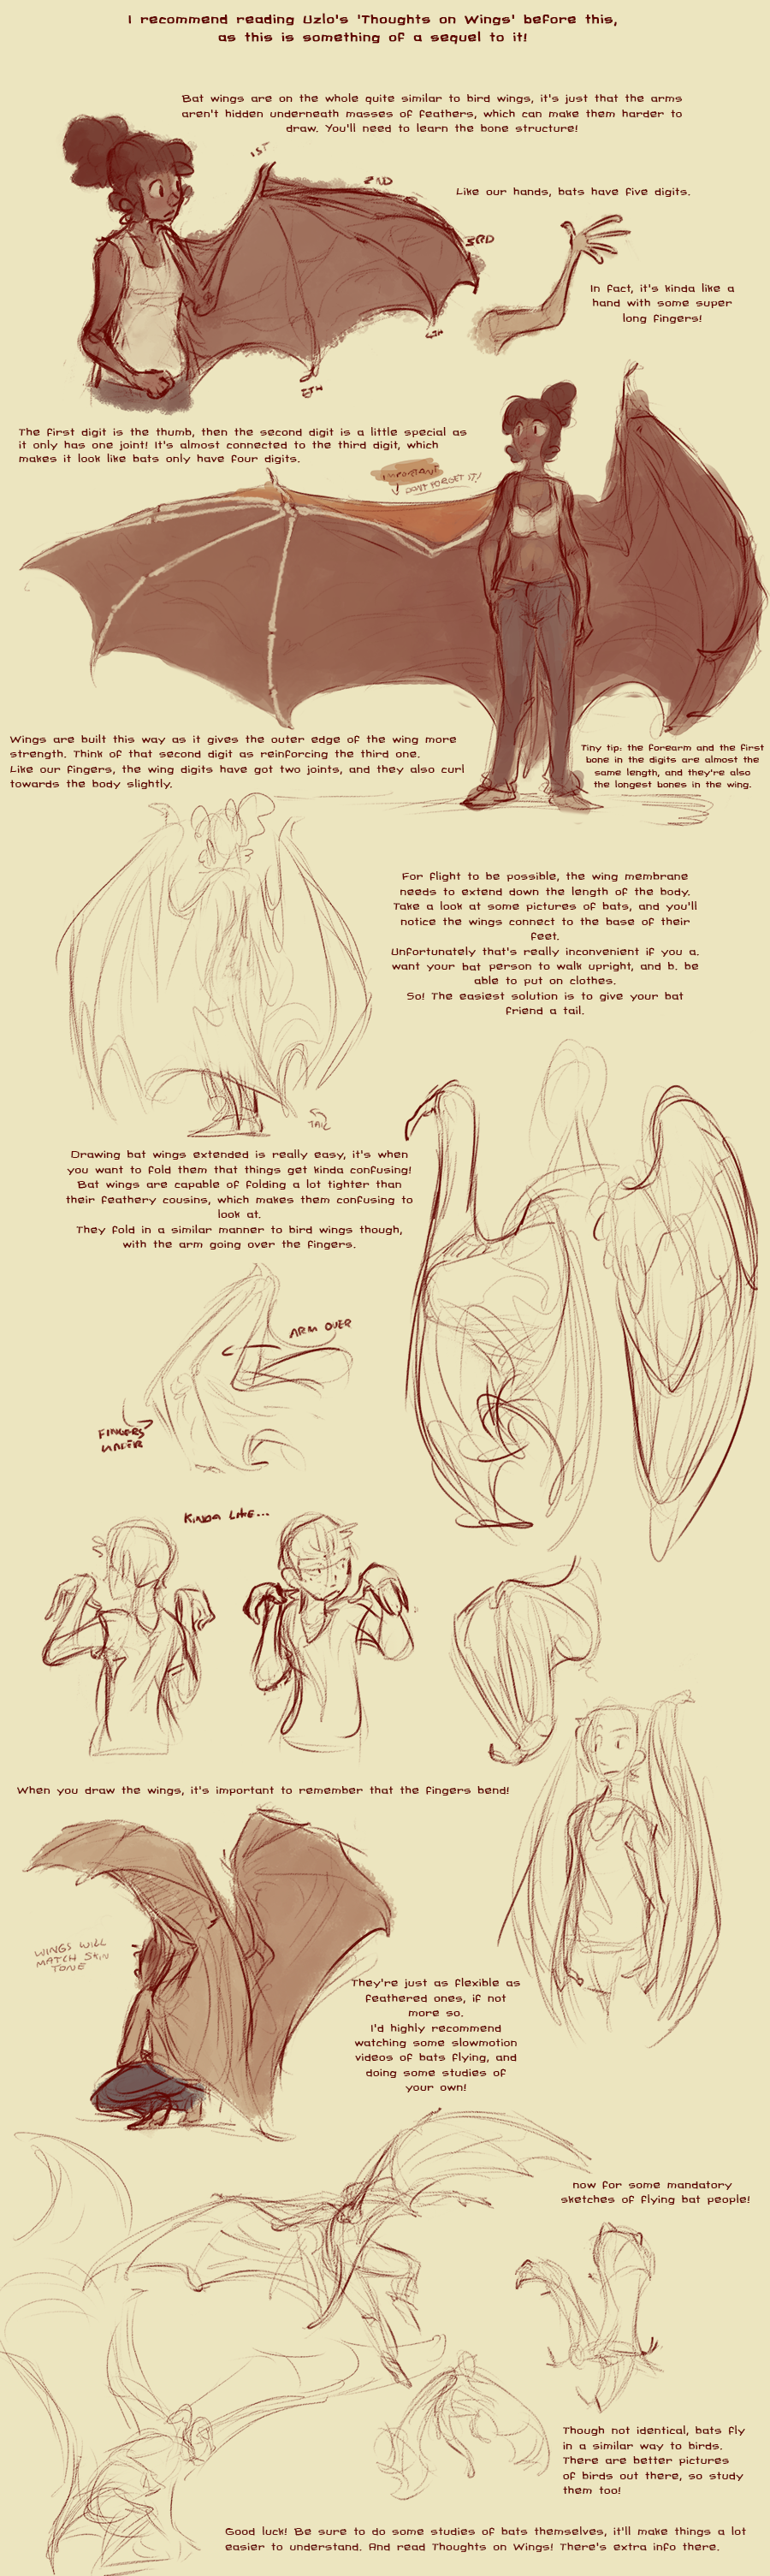 Tutorial For Character Design : Bat wing tutorial by harrie on deviantart ★ character